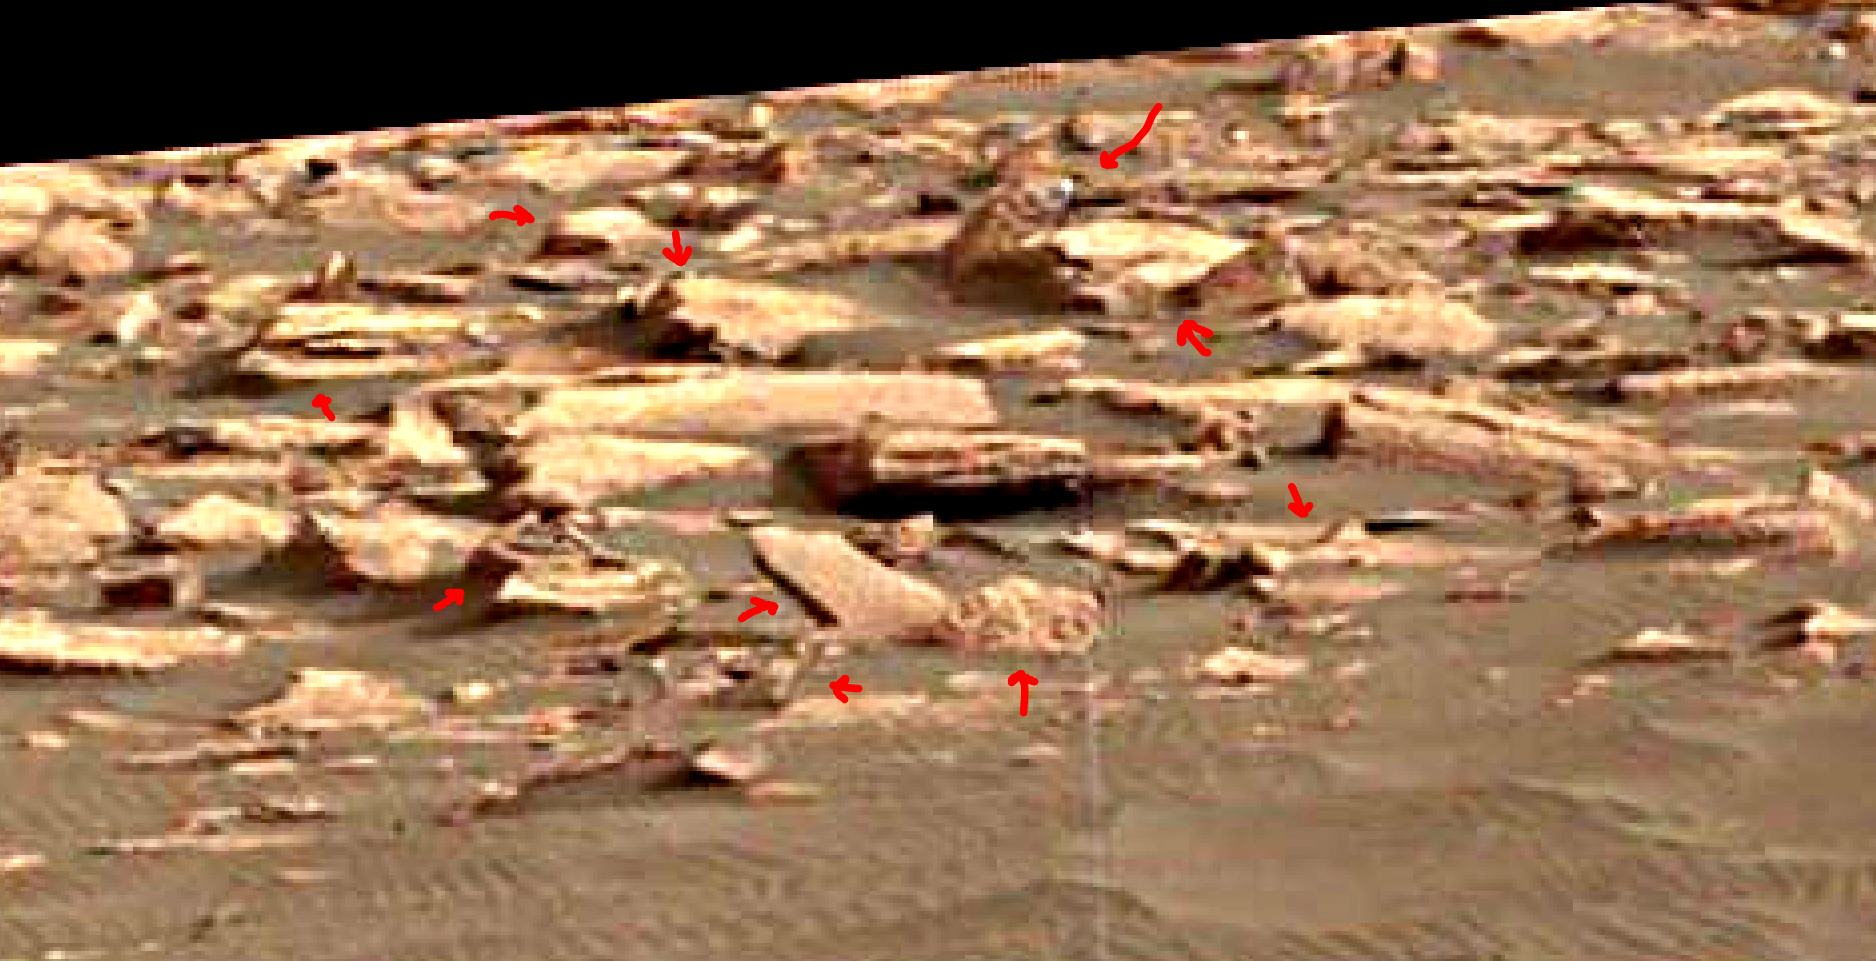 mars-sol-1512-anomaly-artifacts-1-was-life-on-mars